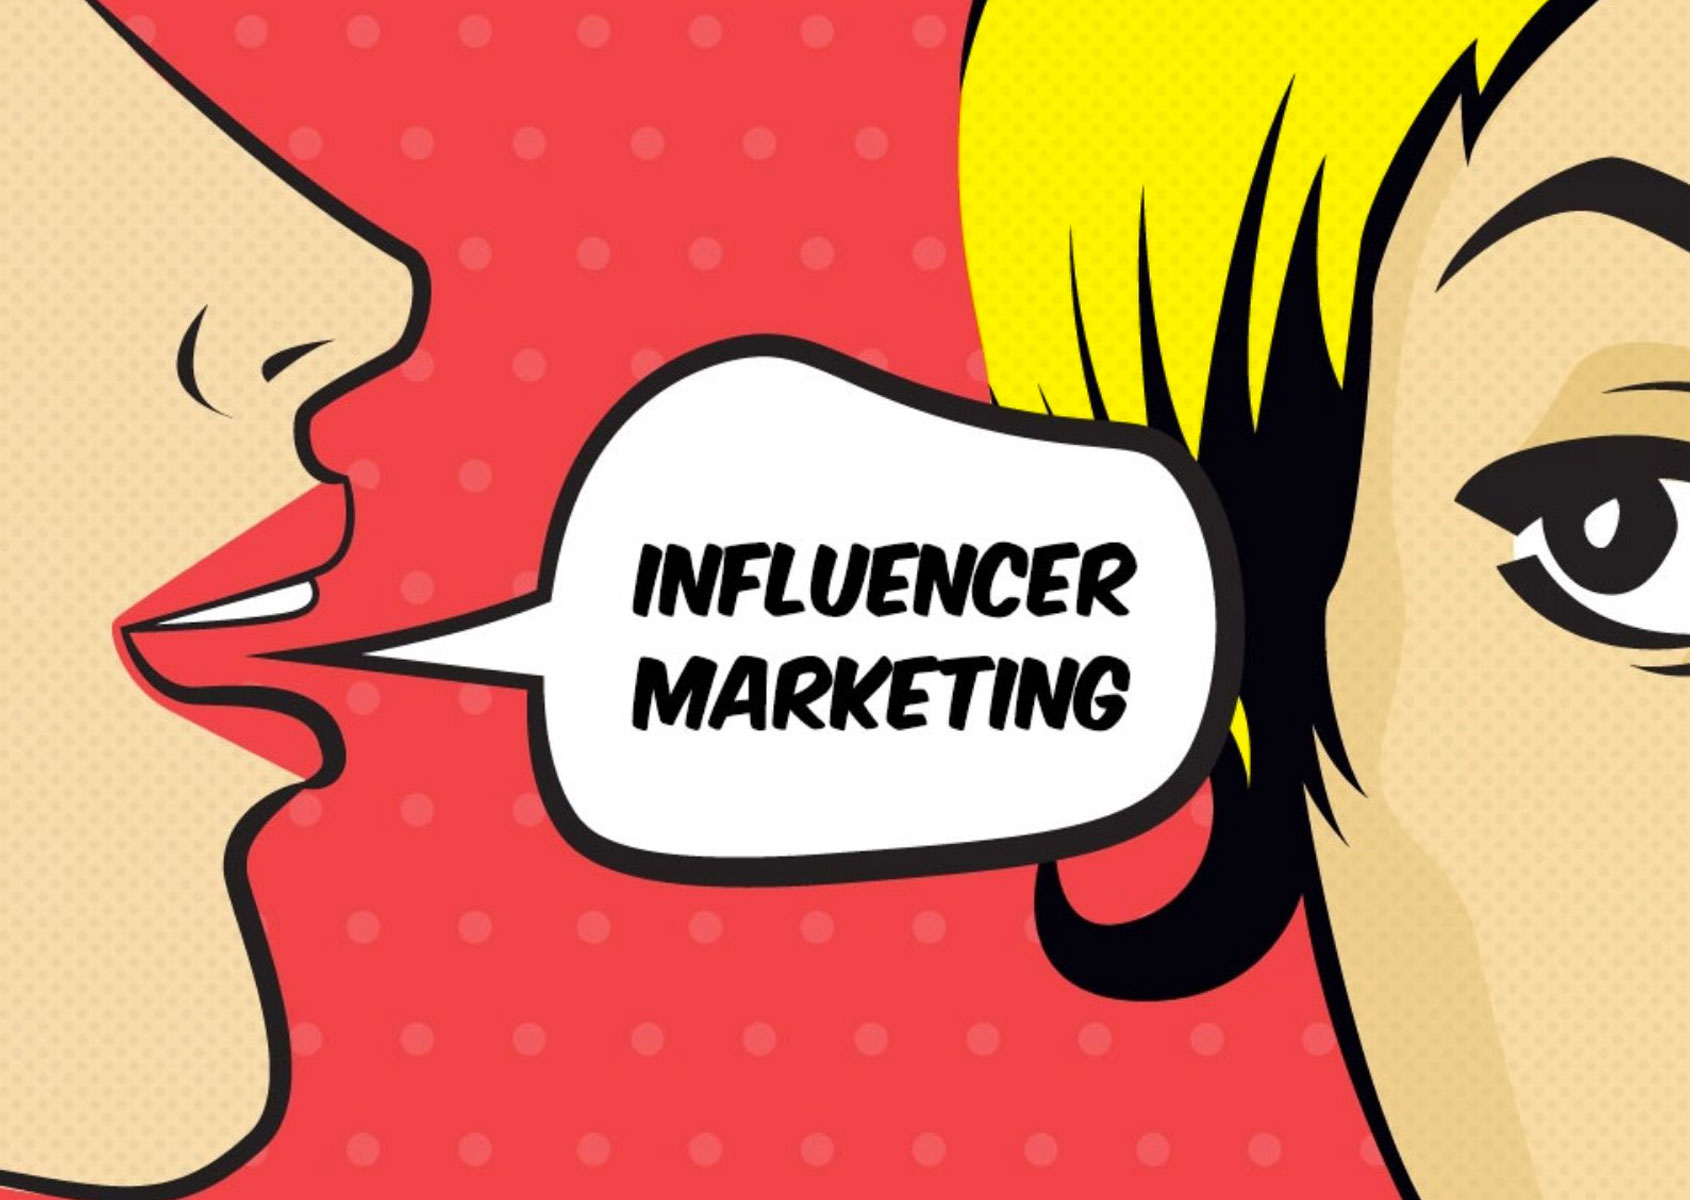 influencer-marketing-buzzoole-01.jpg